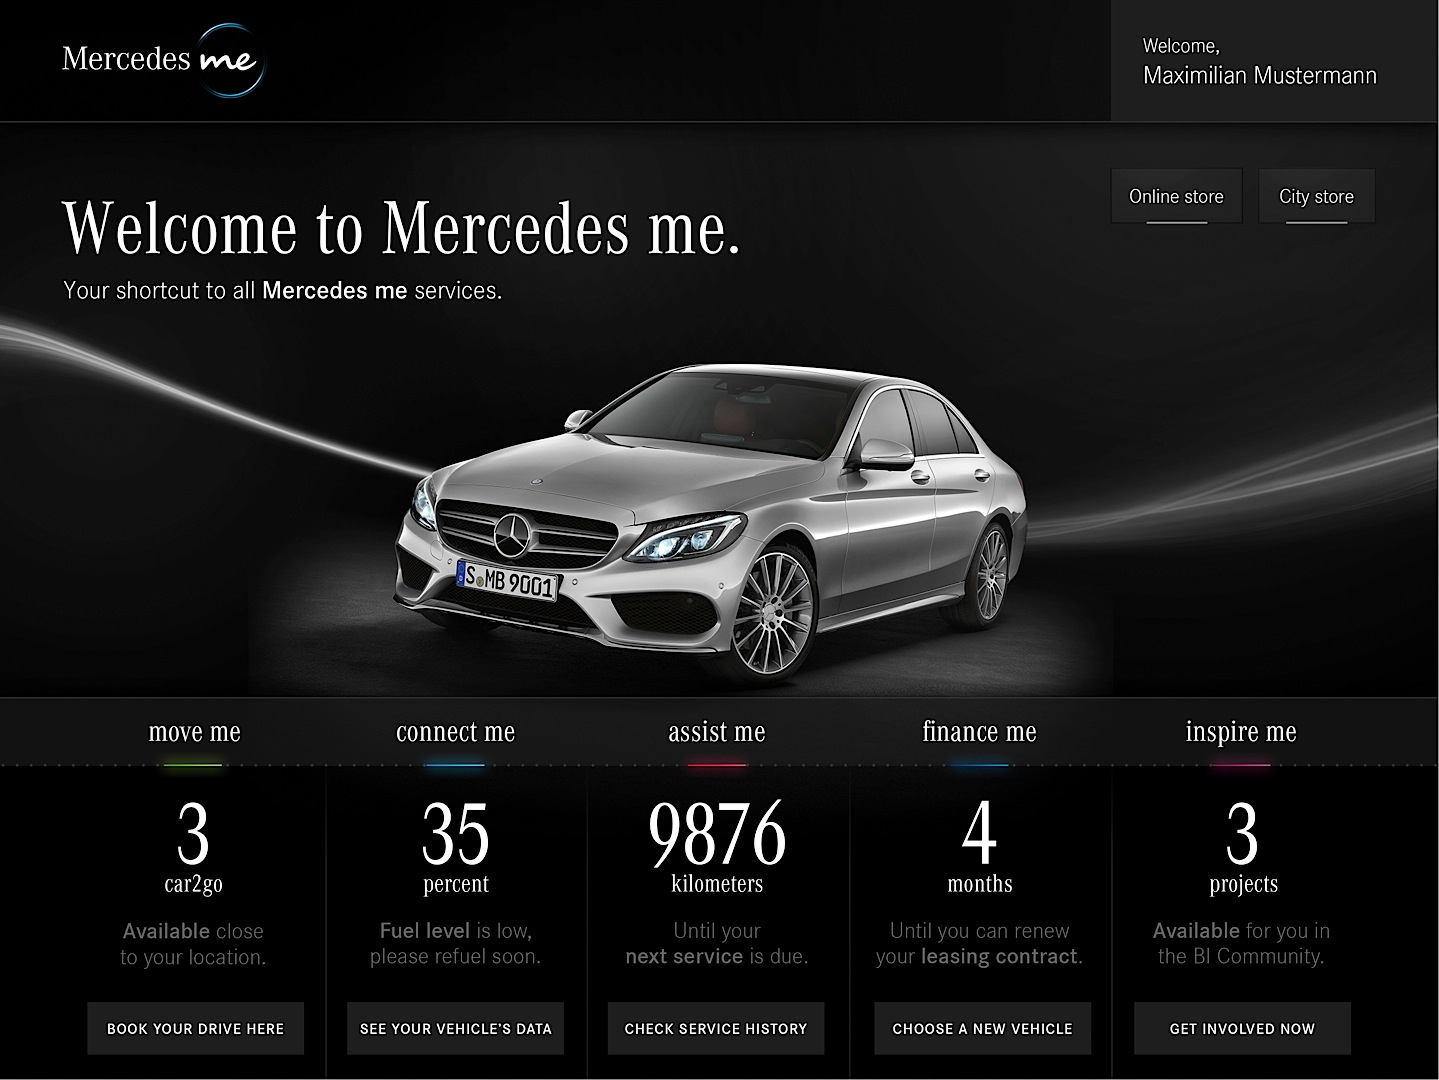 Daimler launches revolutionary mercedes me service brand for Mercedes benz customer service email address